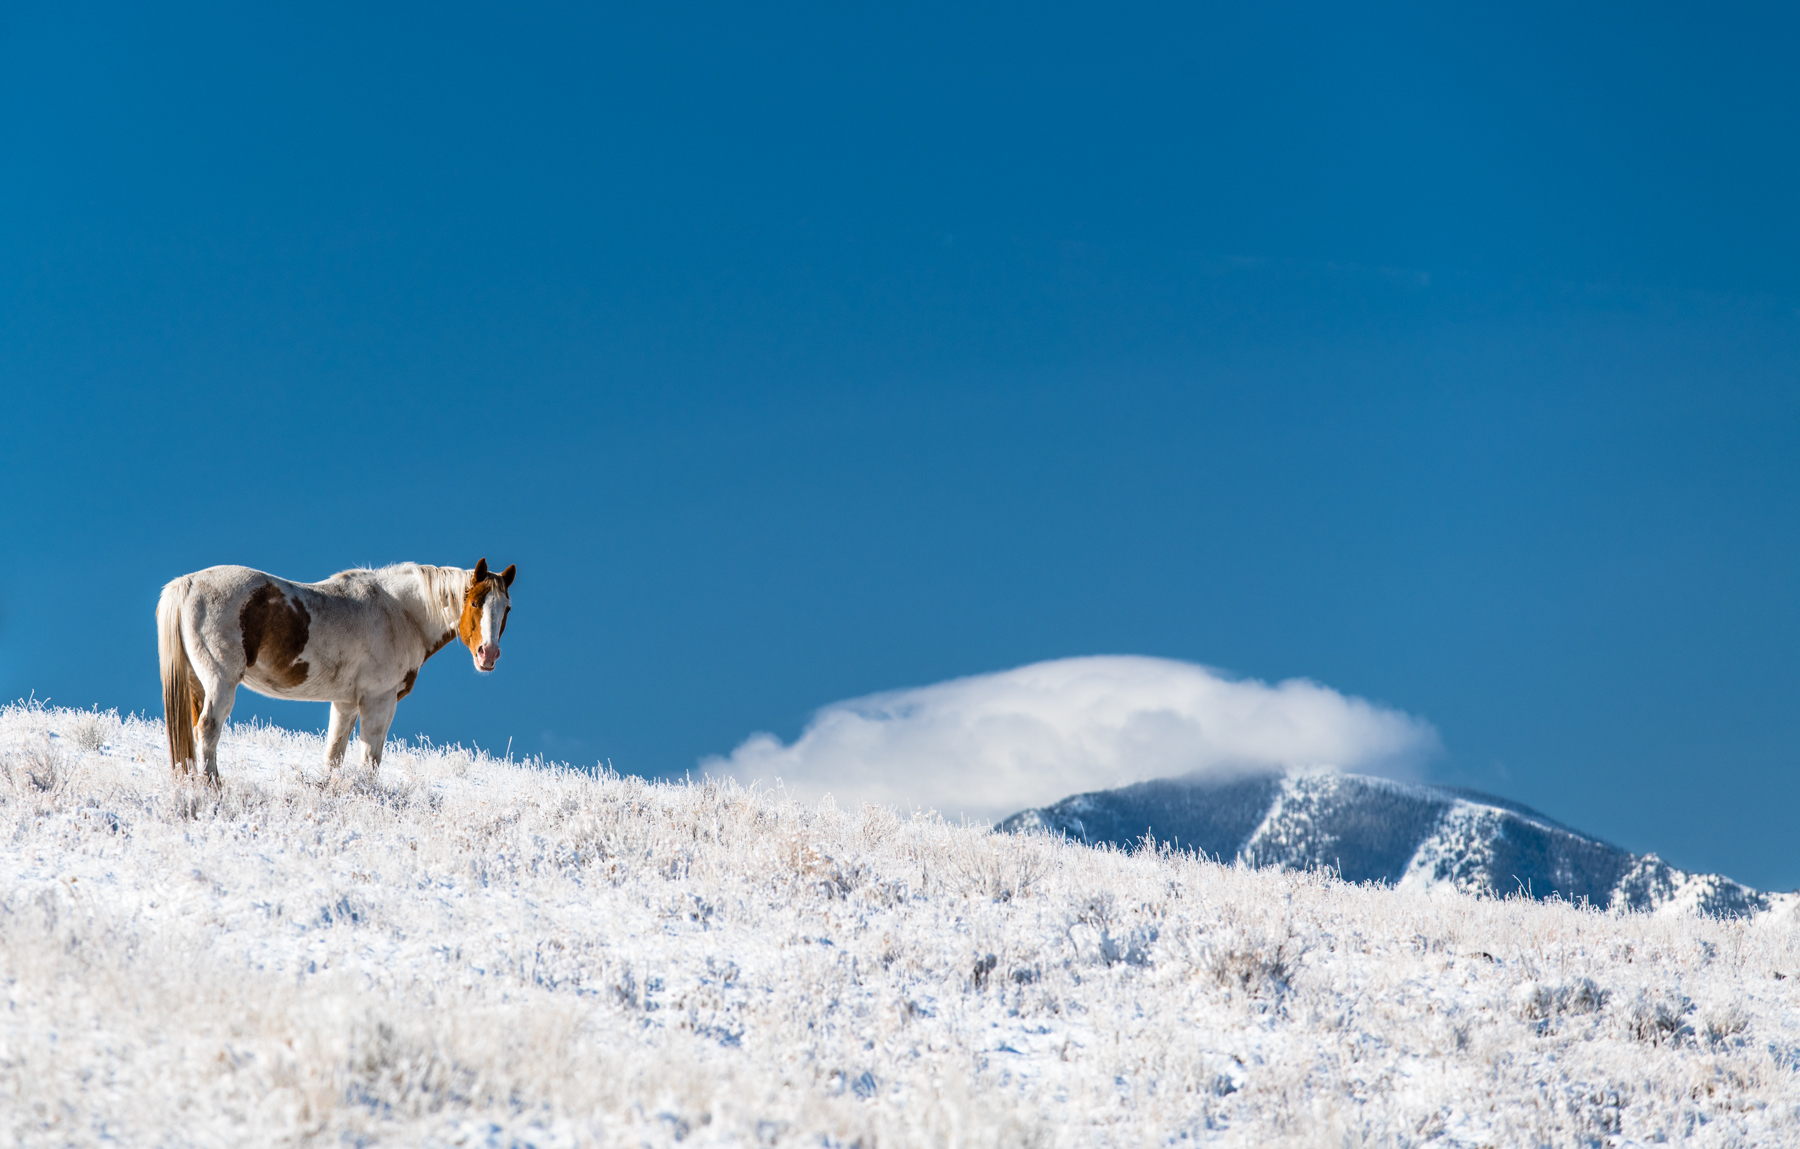 Lone Horse on Snowy Hills